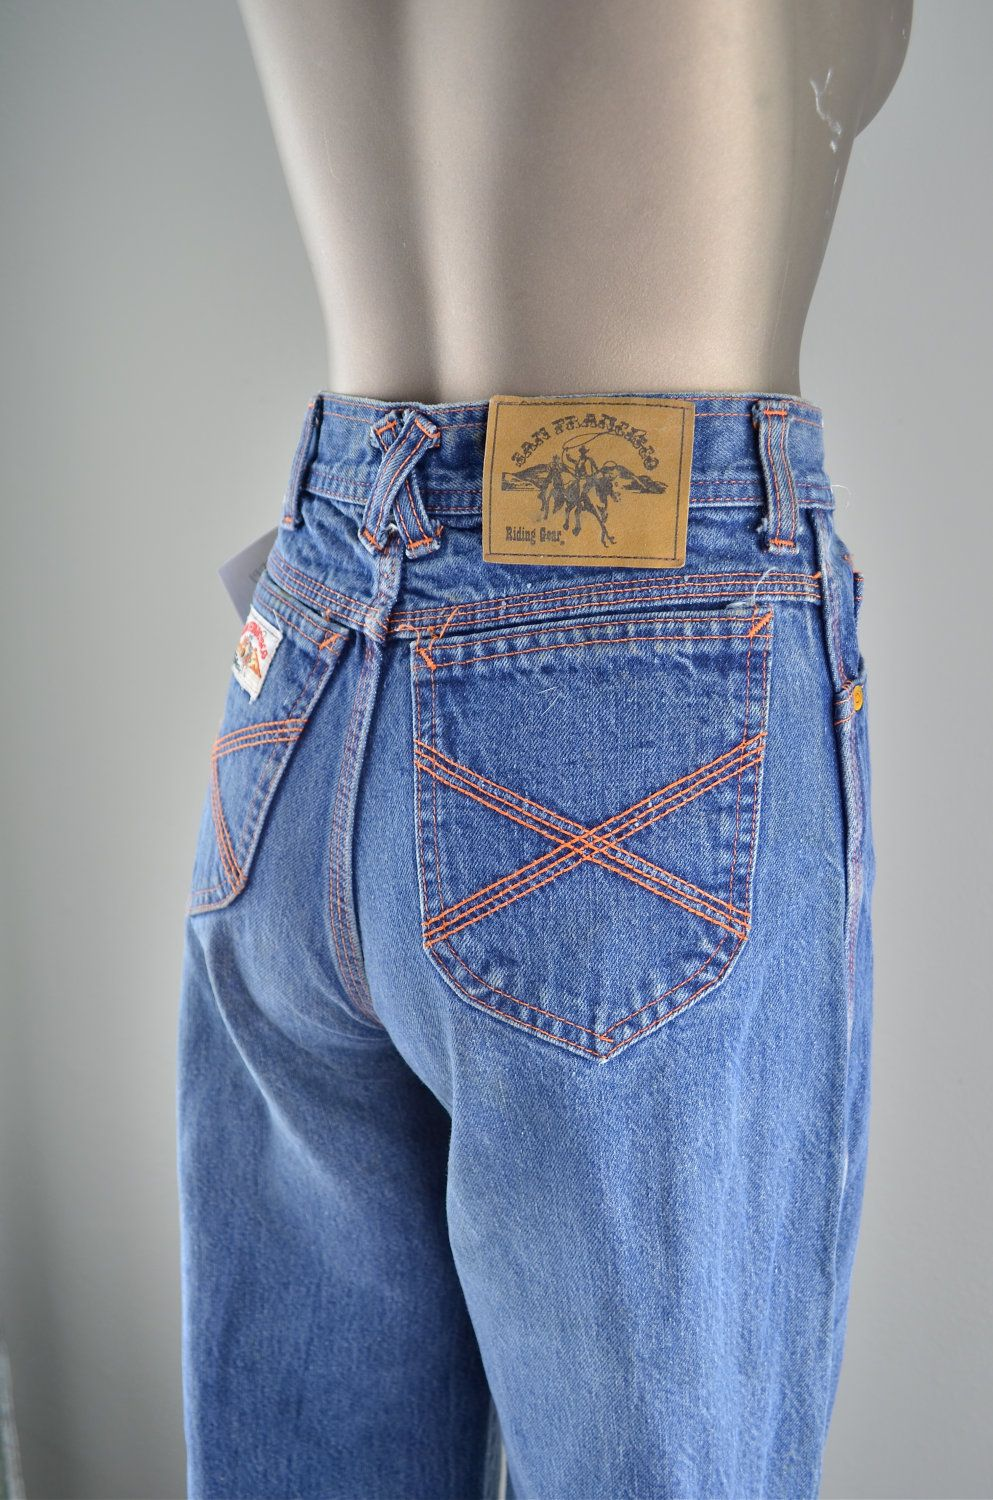 dea402d67 1970s high waist jeans  Vintage 70s jeans   San Francisco Riding Gear. .  (THOUGHT WE WERE SO COOL IN THESE LOVED THEM)